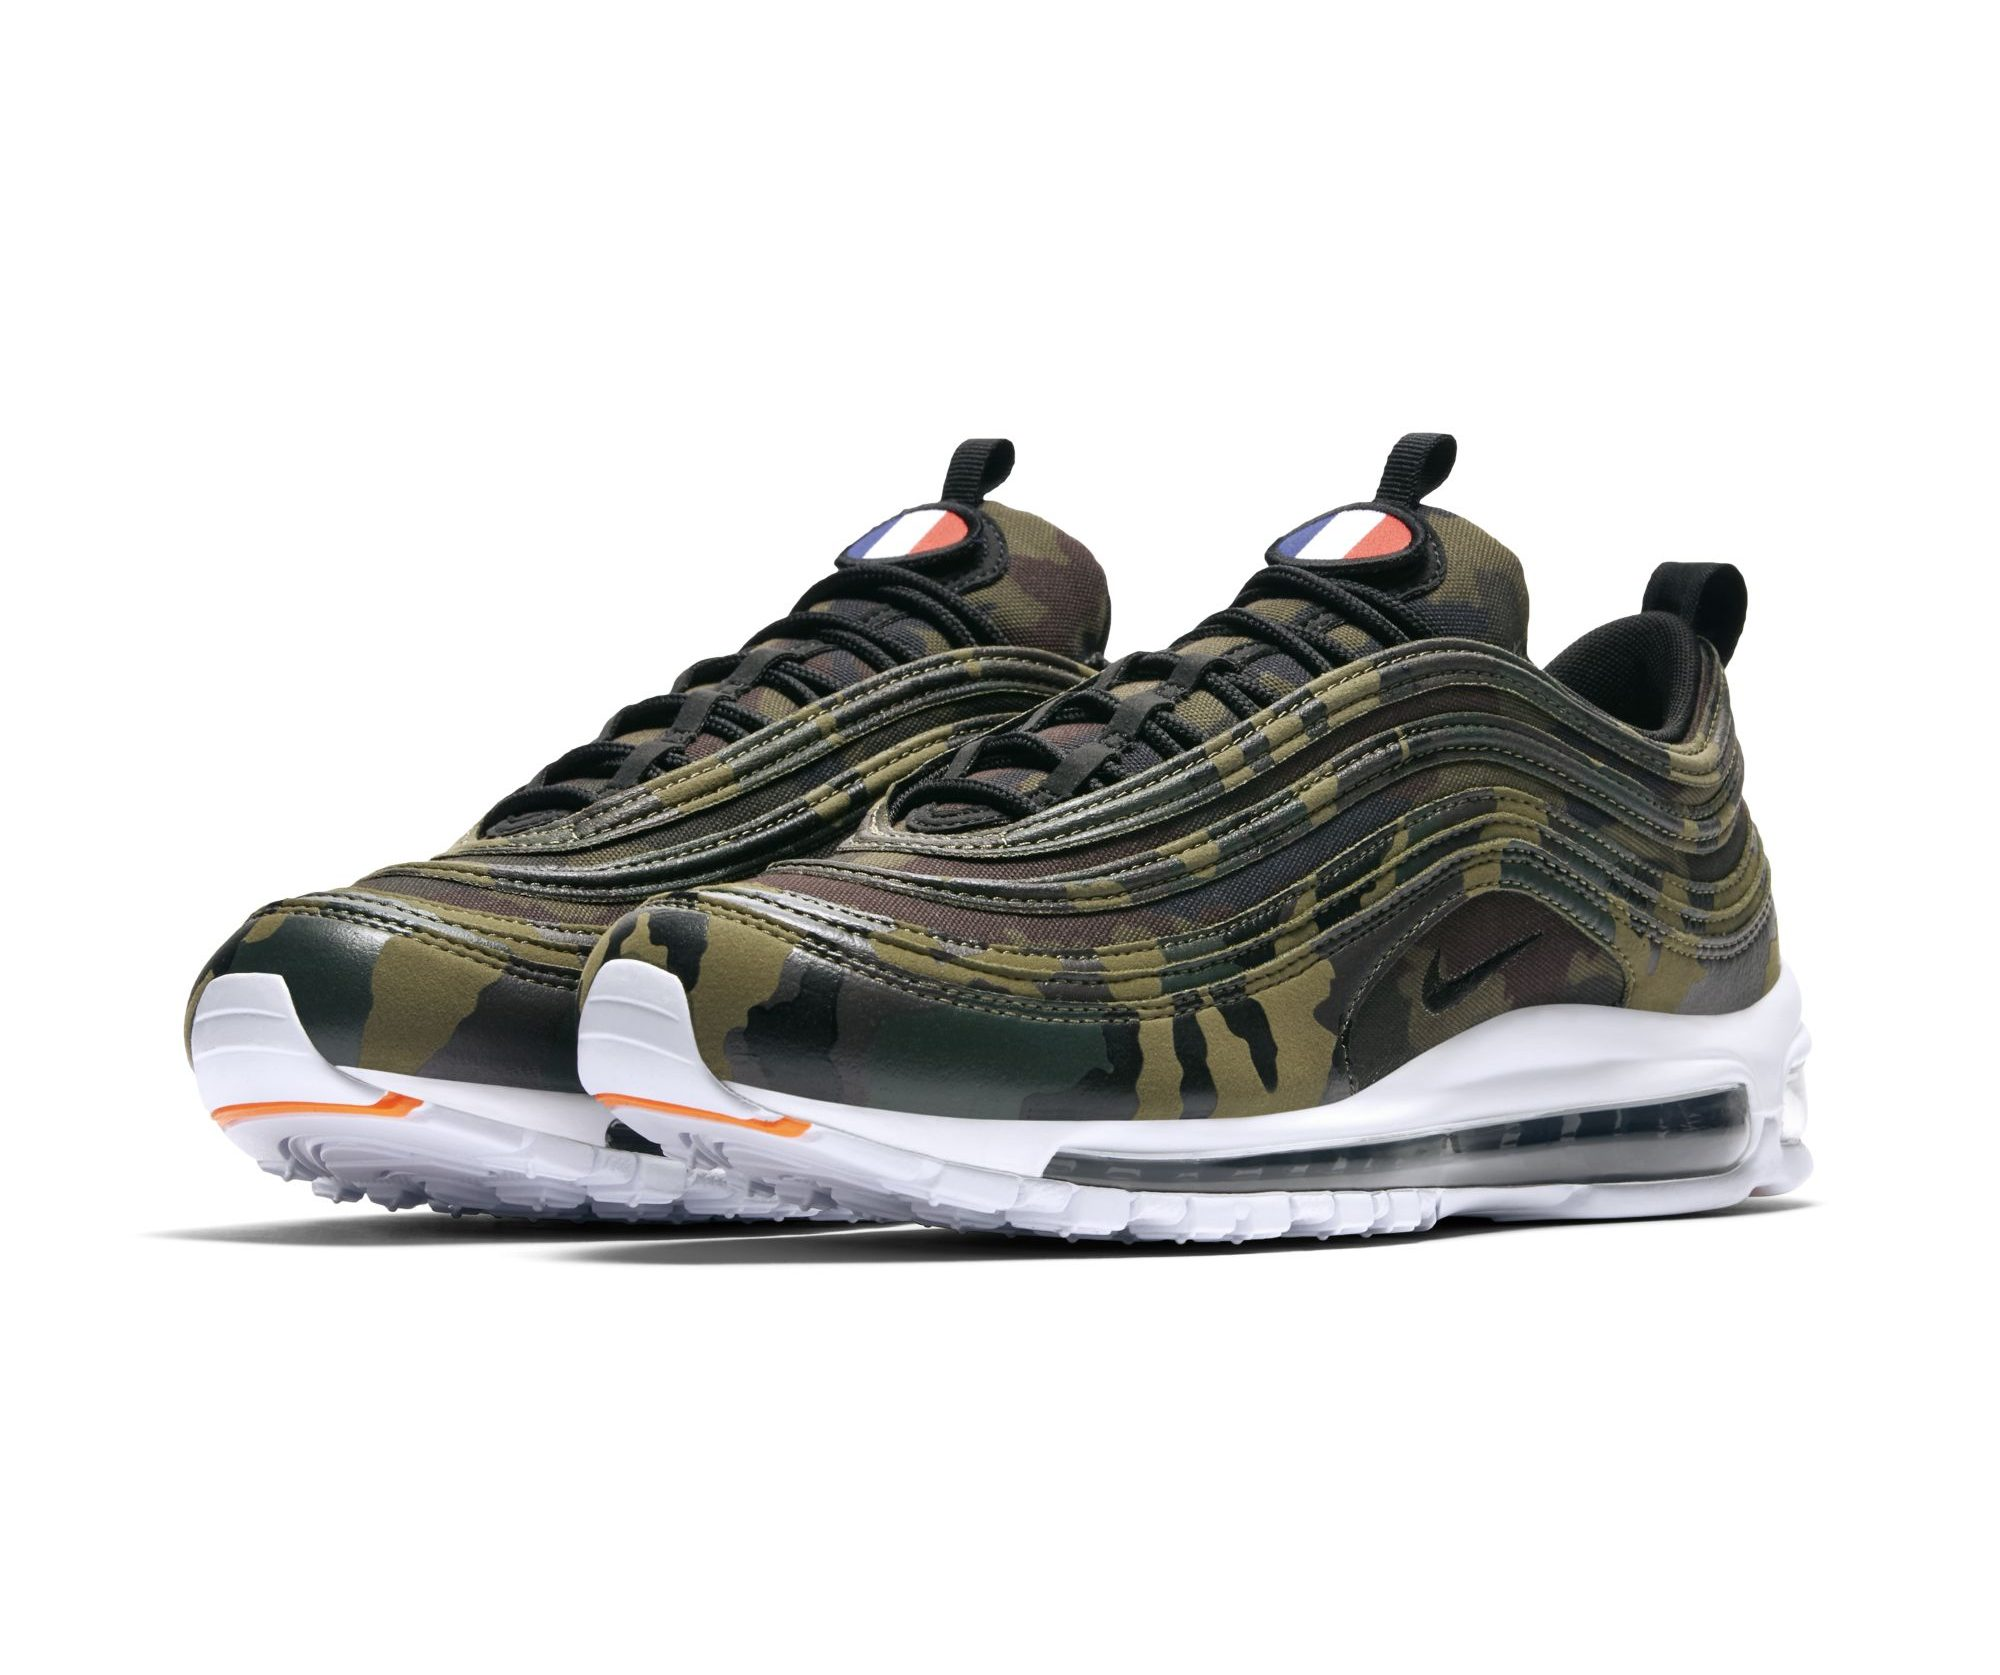 Nike Air Max 97 Premium Germany 'Country Camo Pack' | More